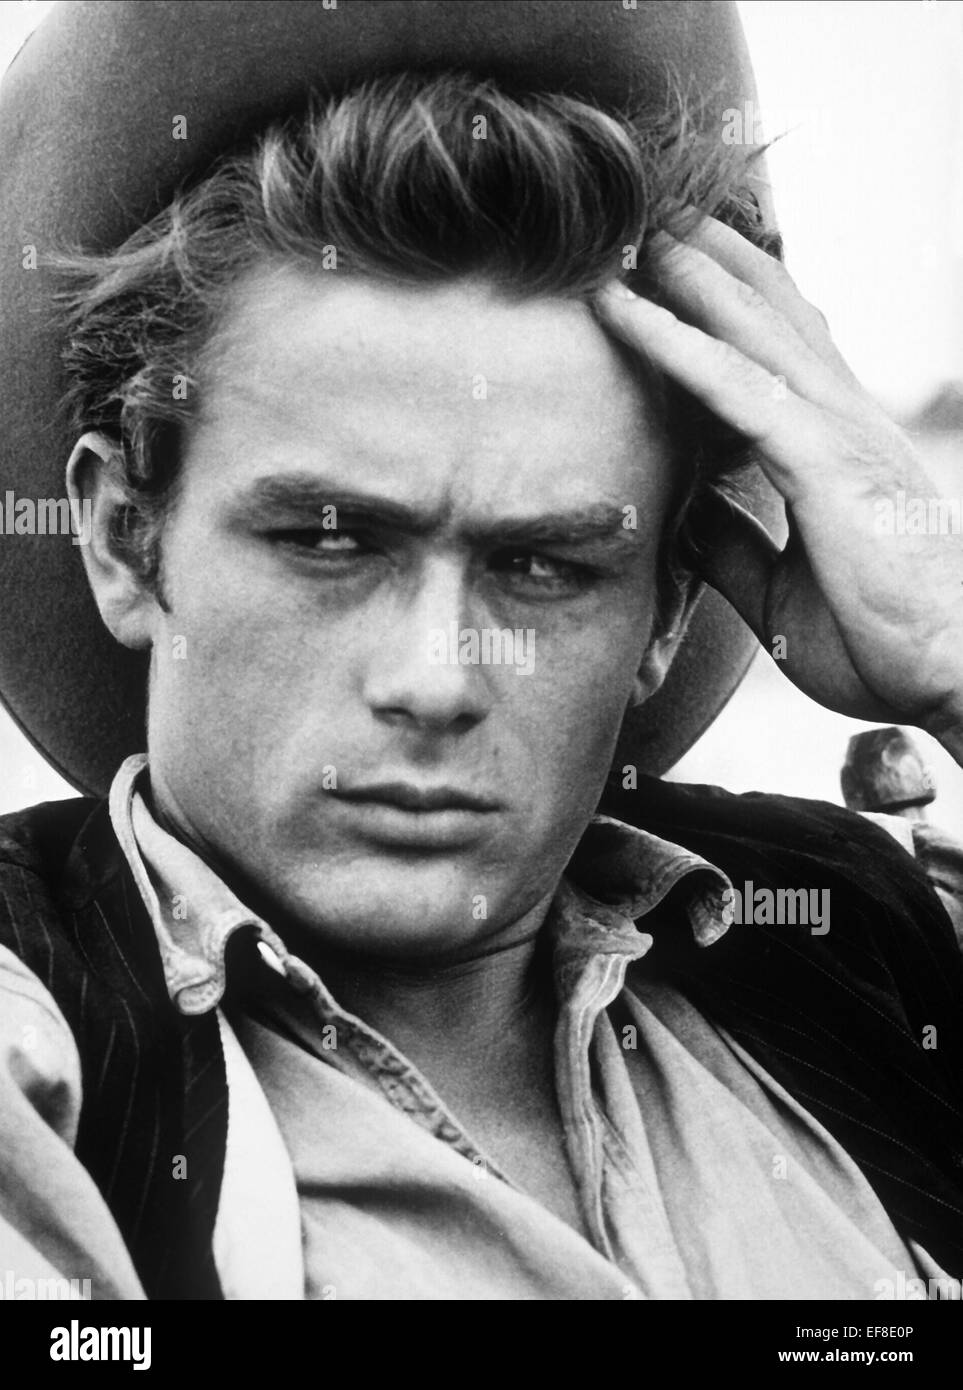 James Dean Giganten